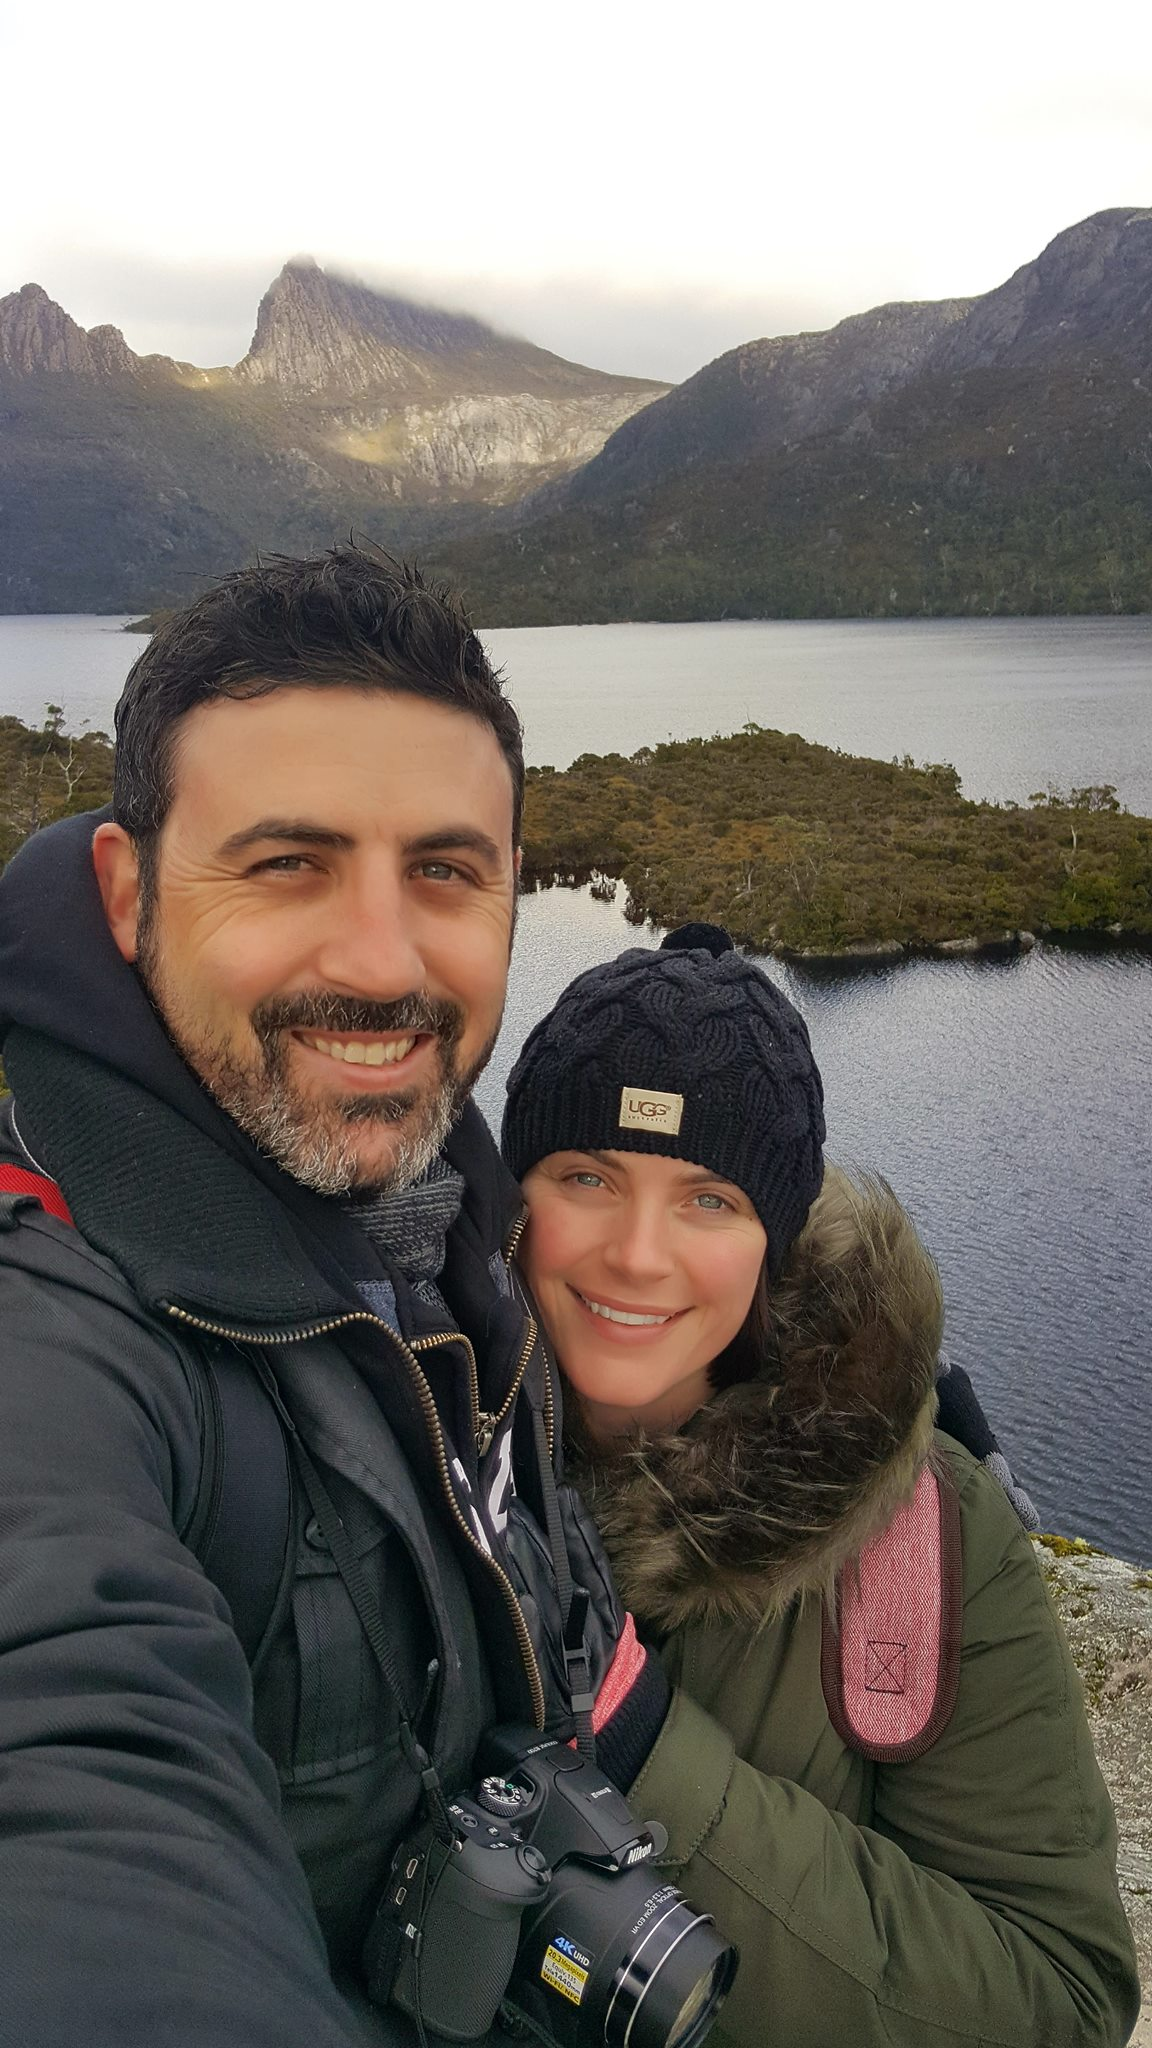 Michael Doig & Louise Connolly hiking Cradle Mountain